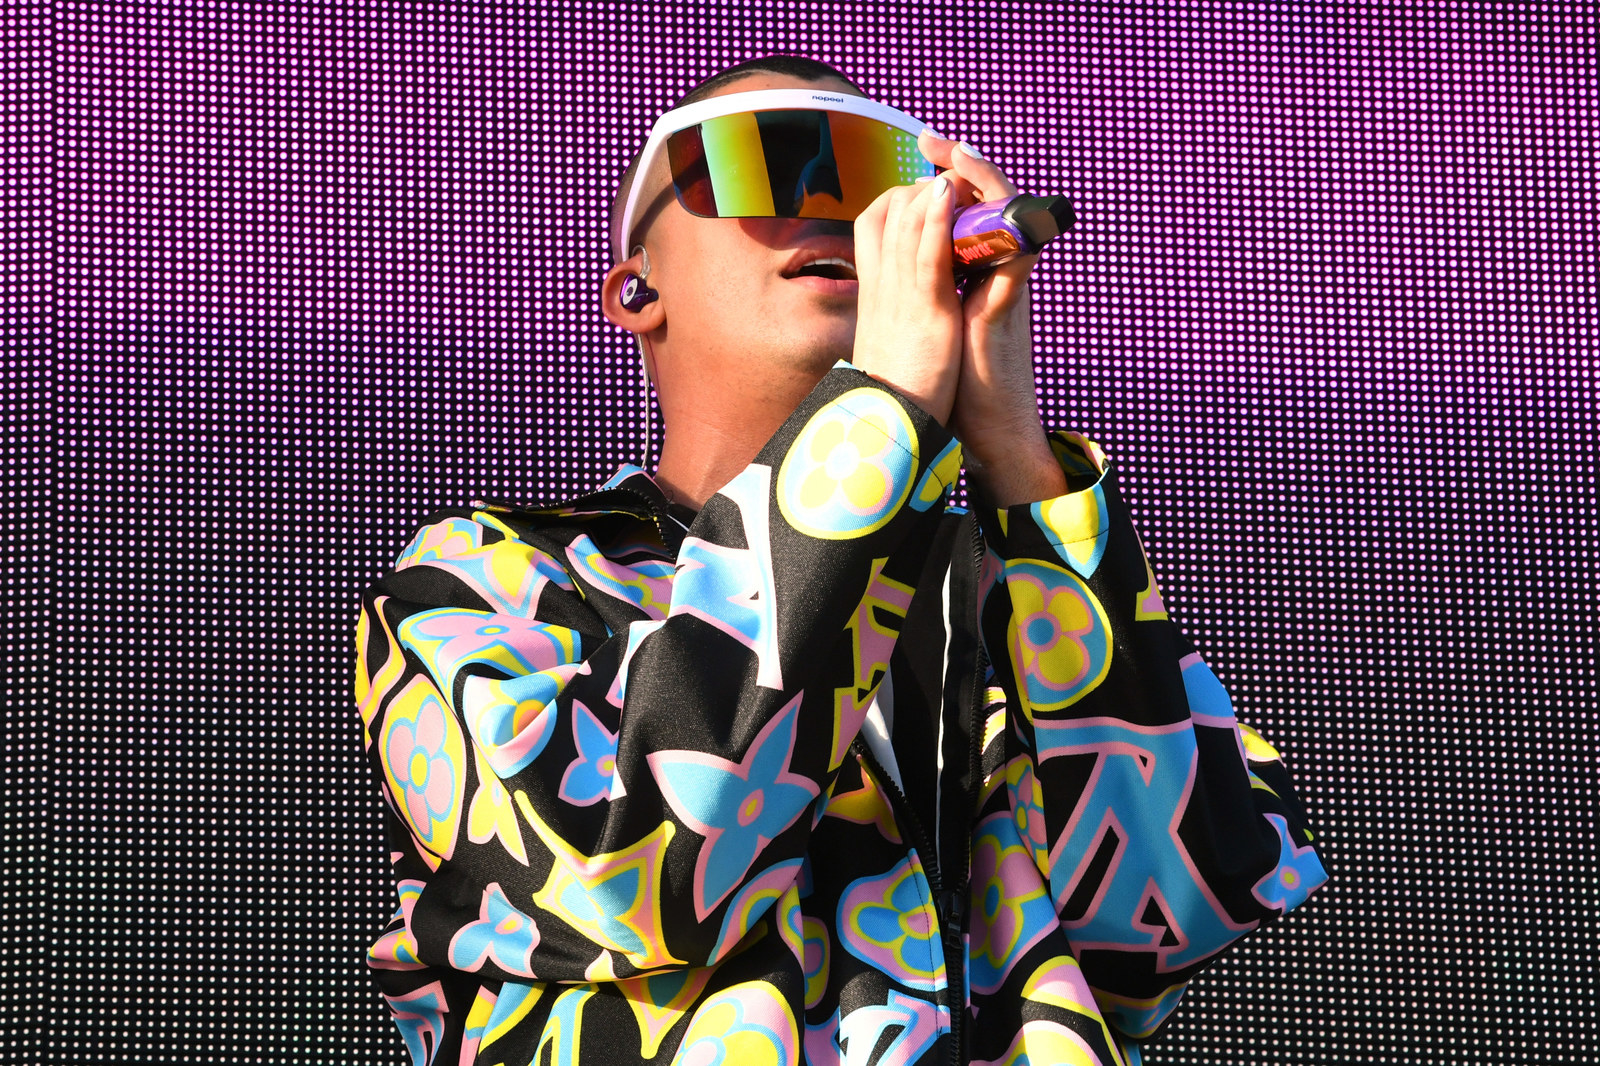 Bad Bunny Performed At Coachella And Brought The House Down